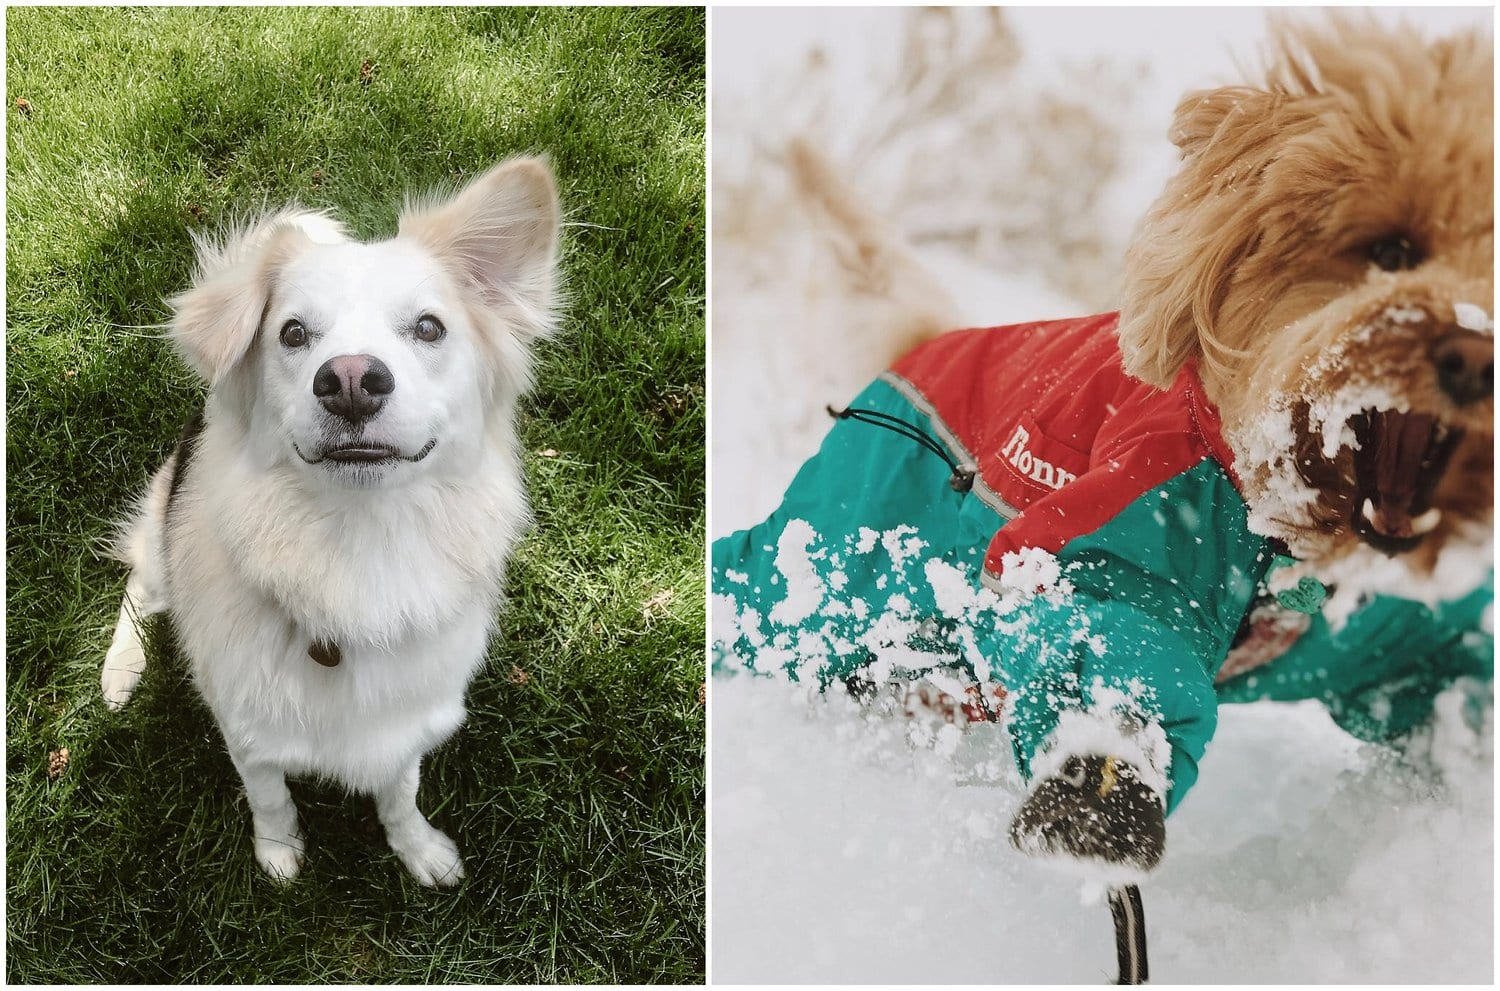 Two individual photos with a white dog on the left and a brown dog on the right.